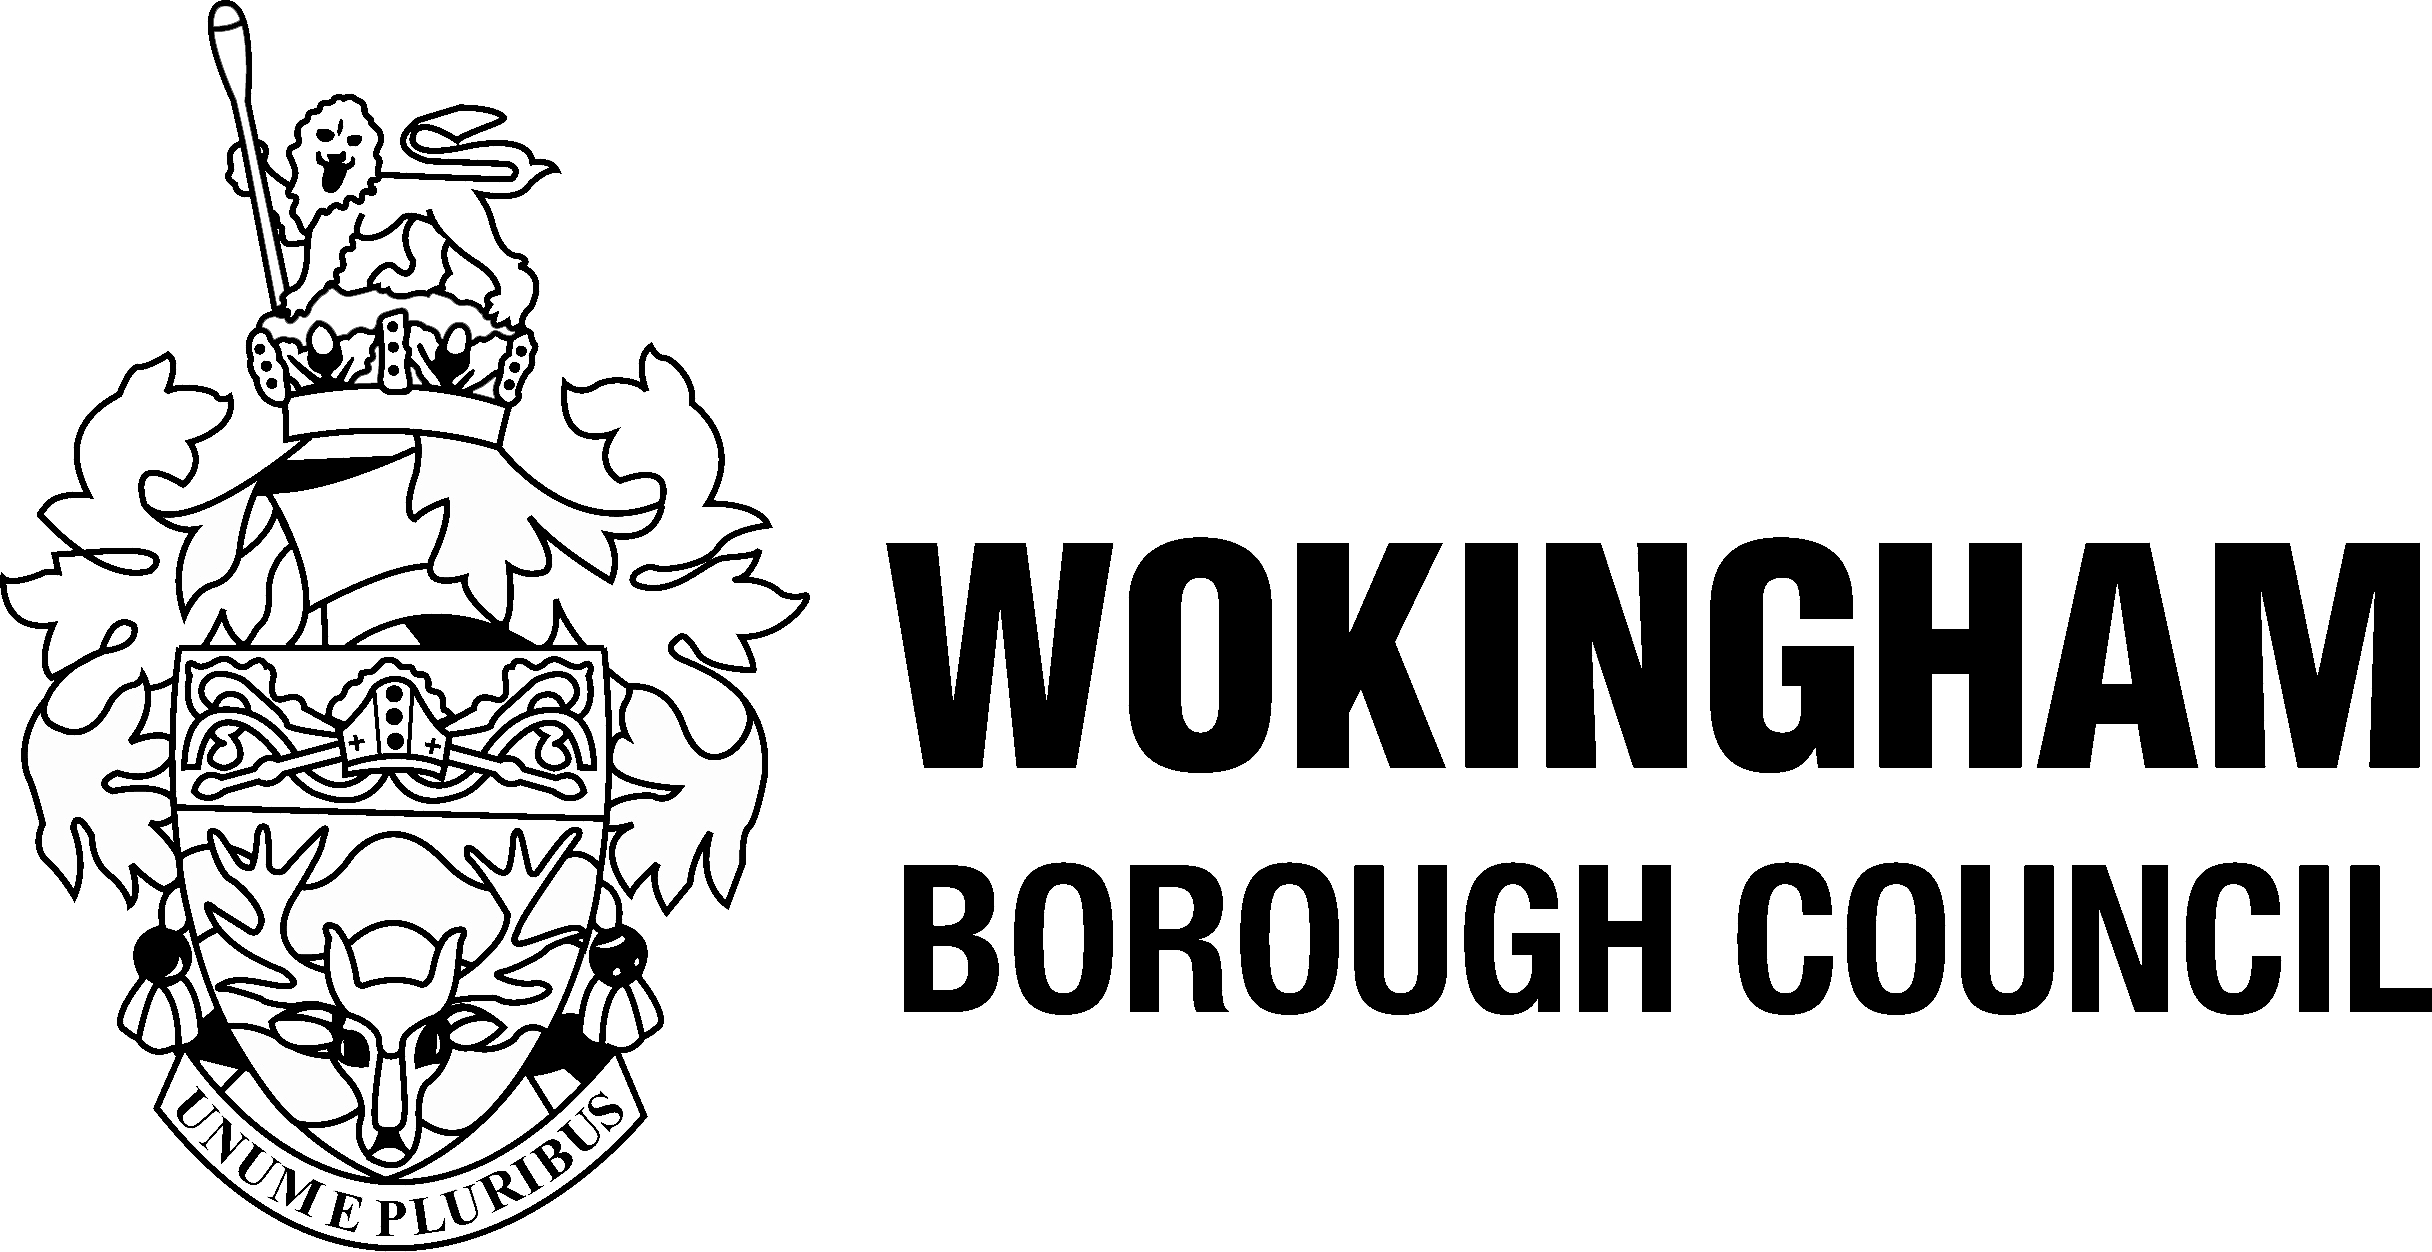 Wokingham Borough Council Crest